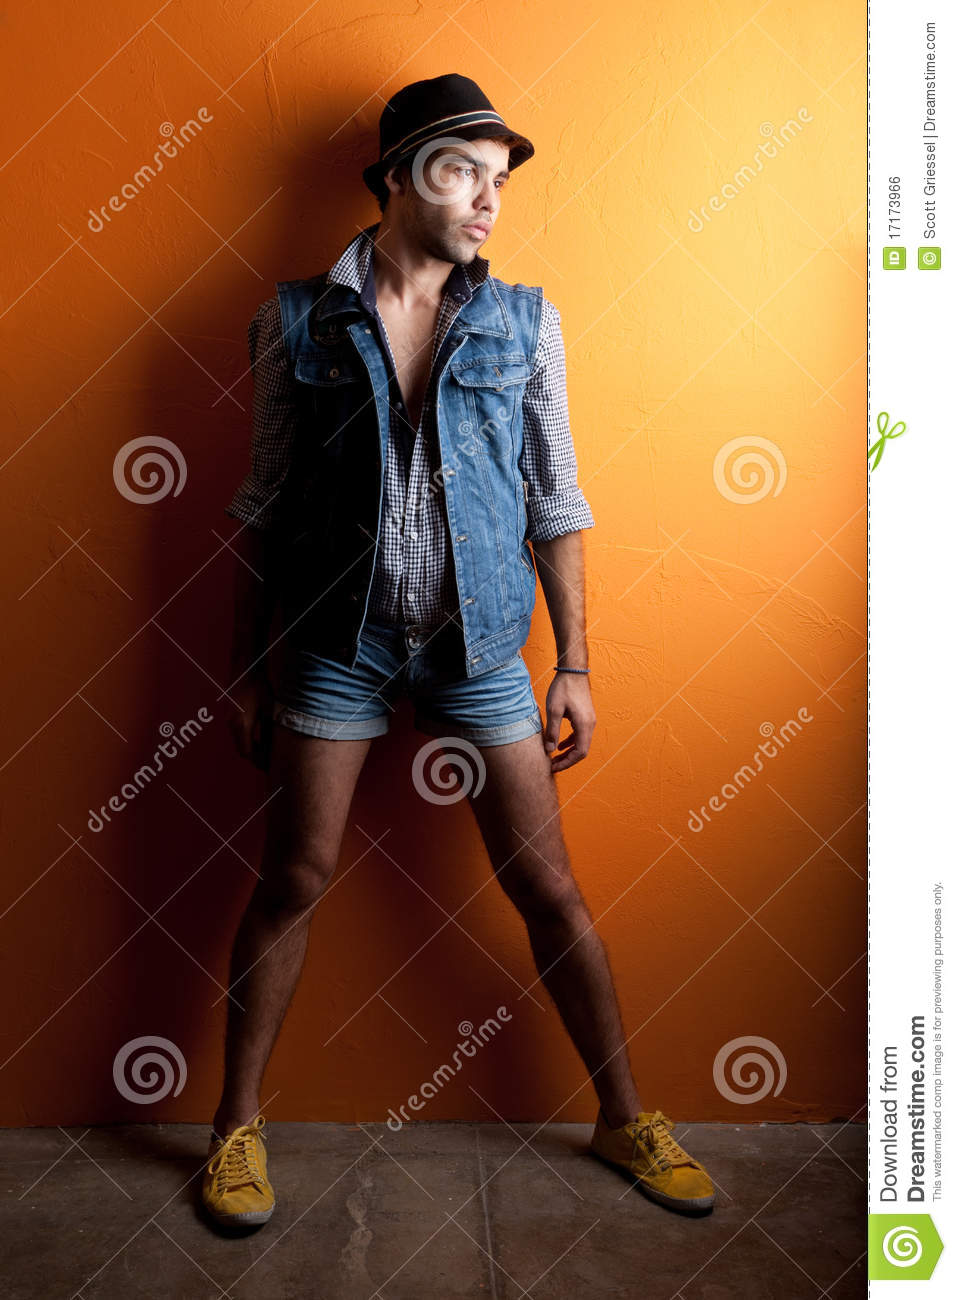 Sexy Gay Man In Jeans And Hat Royalty Free Stock Image -7283